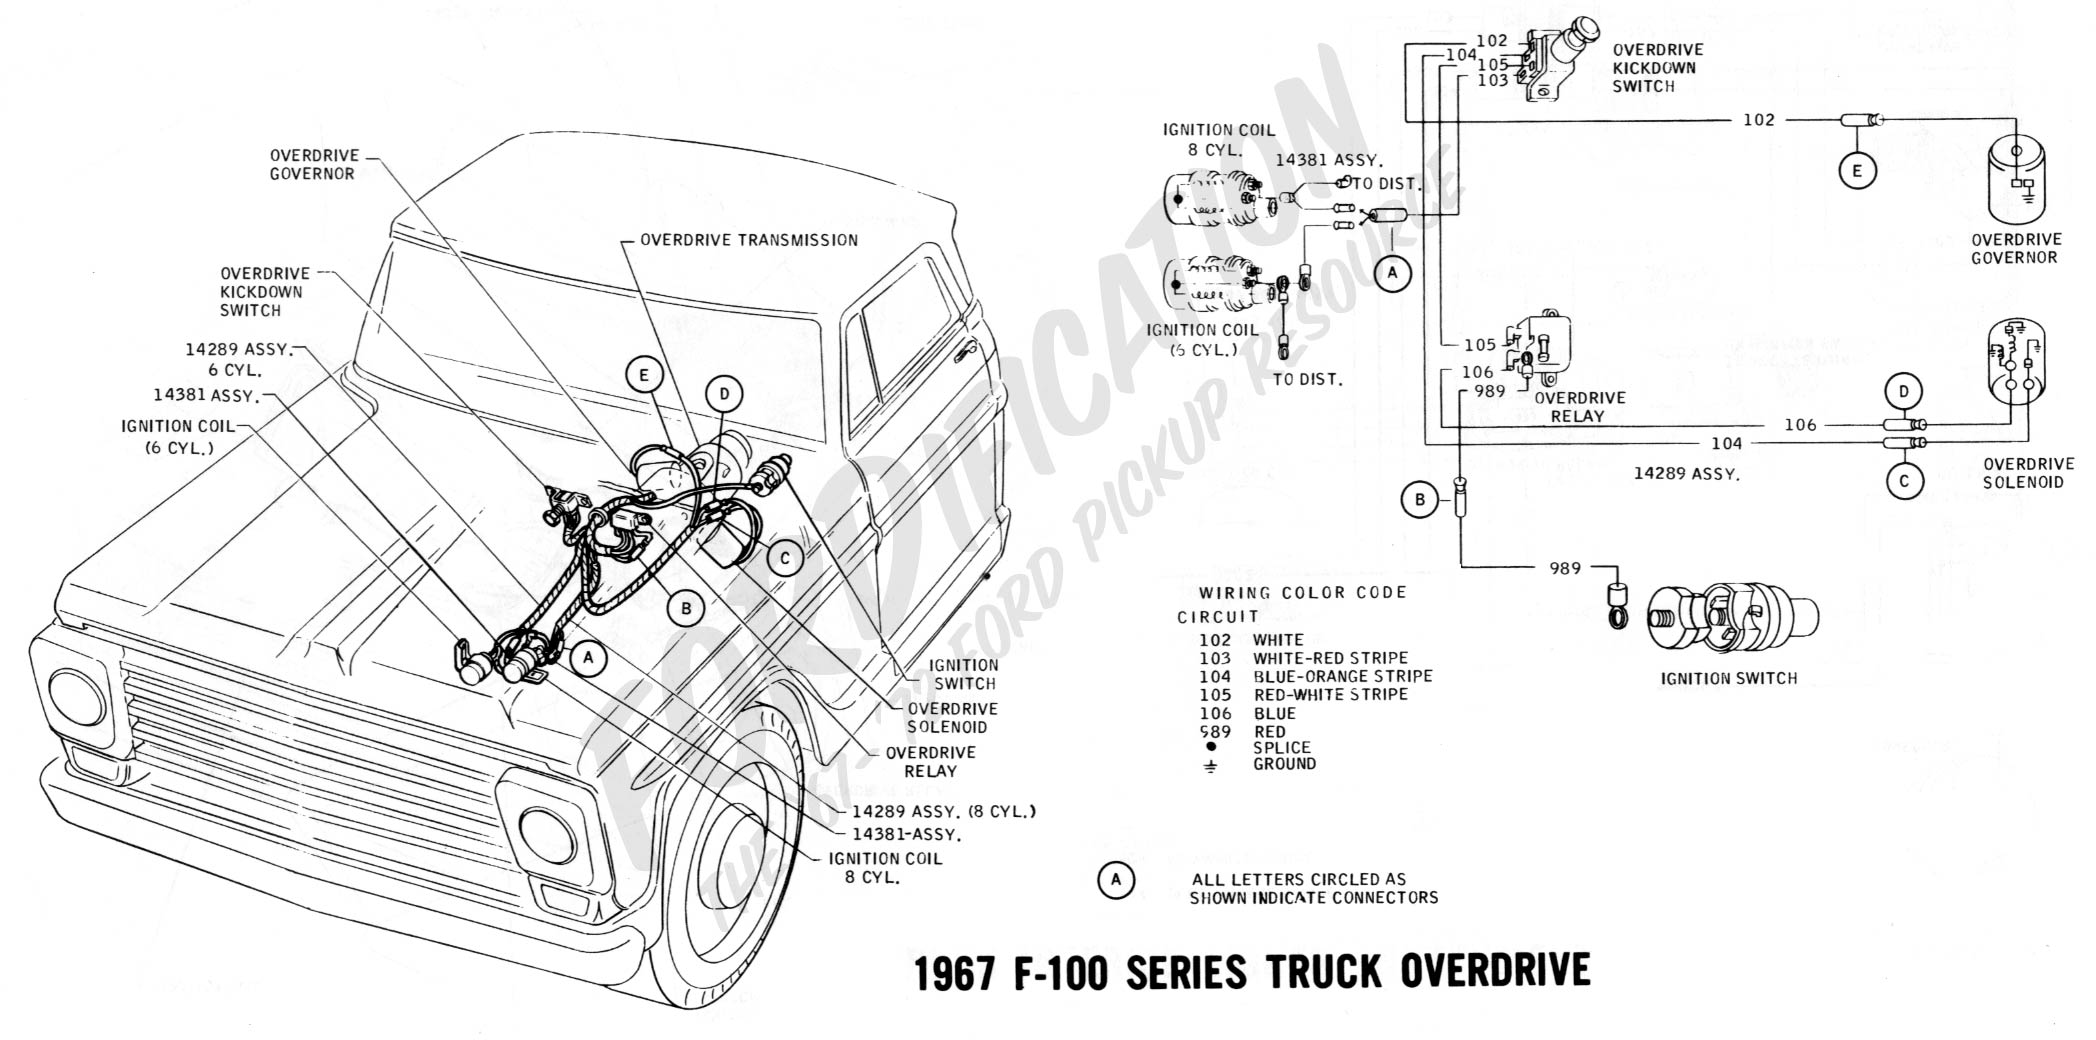 wiring 1967overdrive2 1977 chevy truck steering column diagram wiring diagram simonand Basic Electrical Wiring Diagrams at gsmx.co